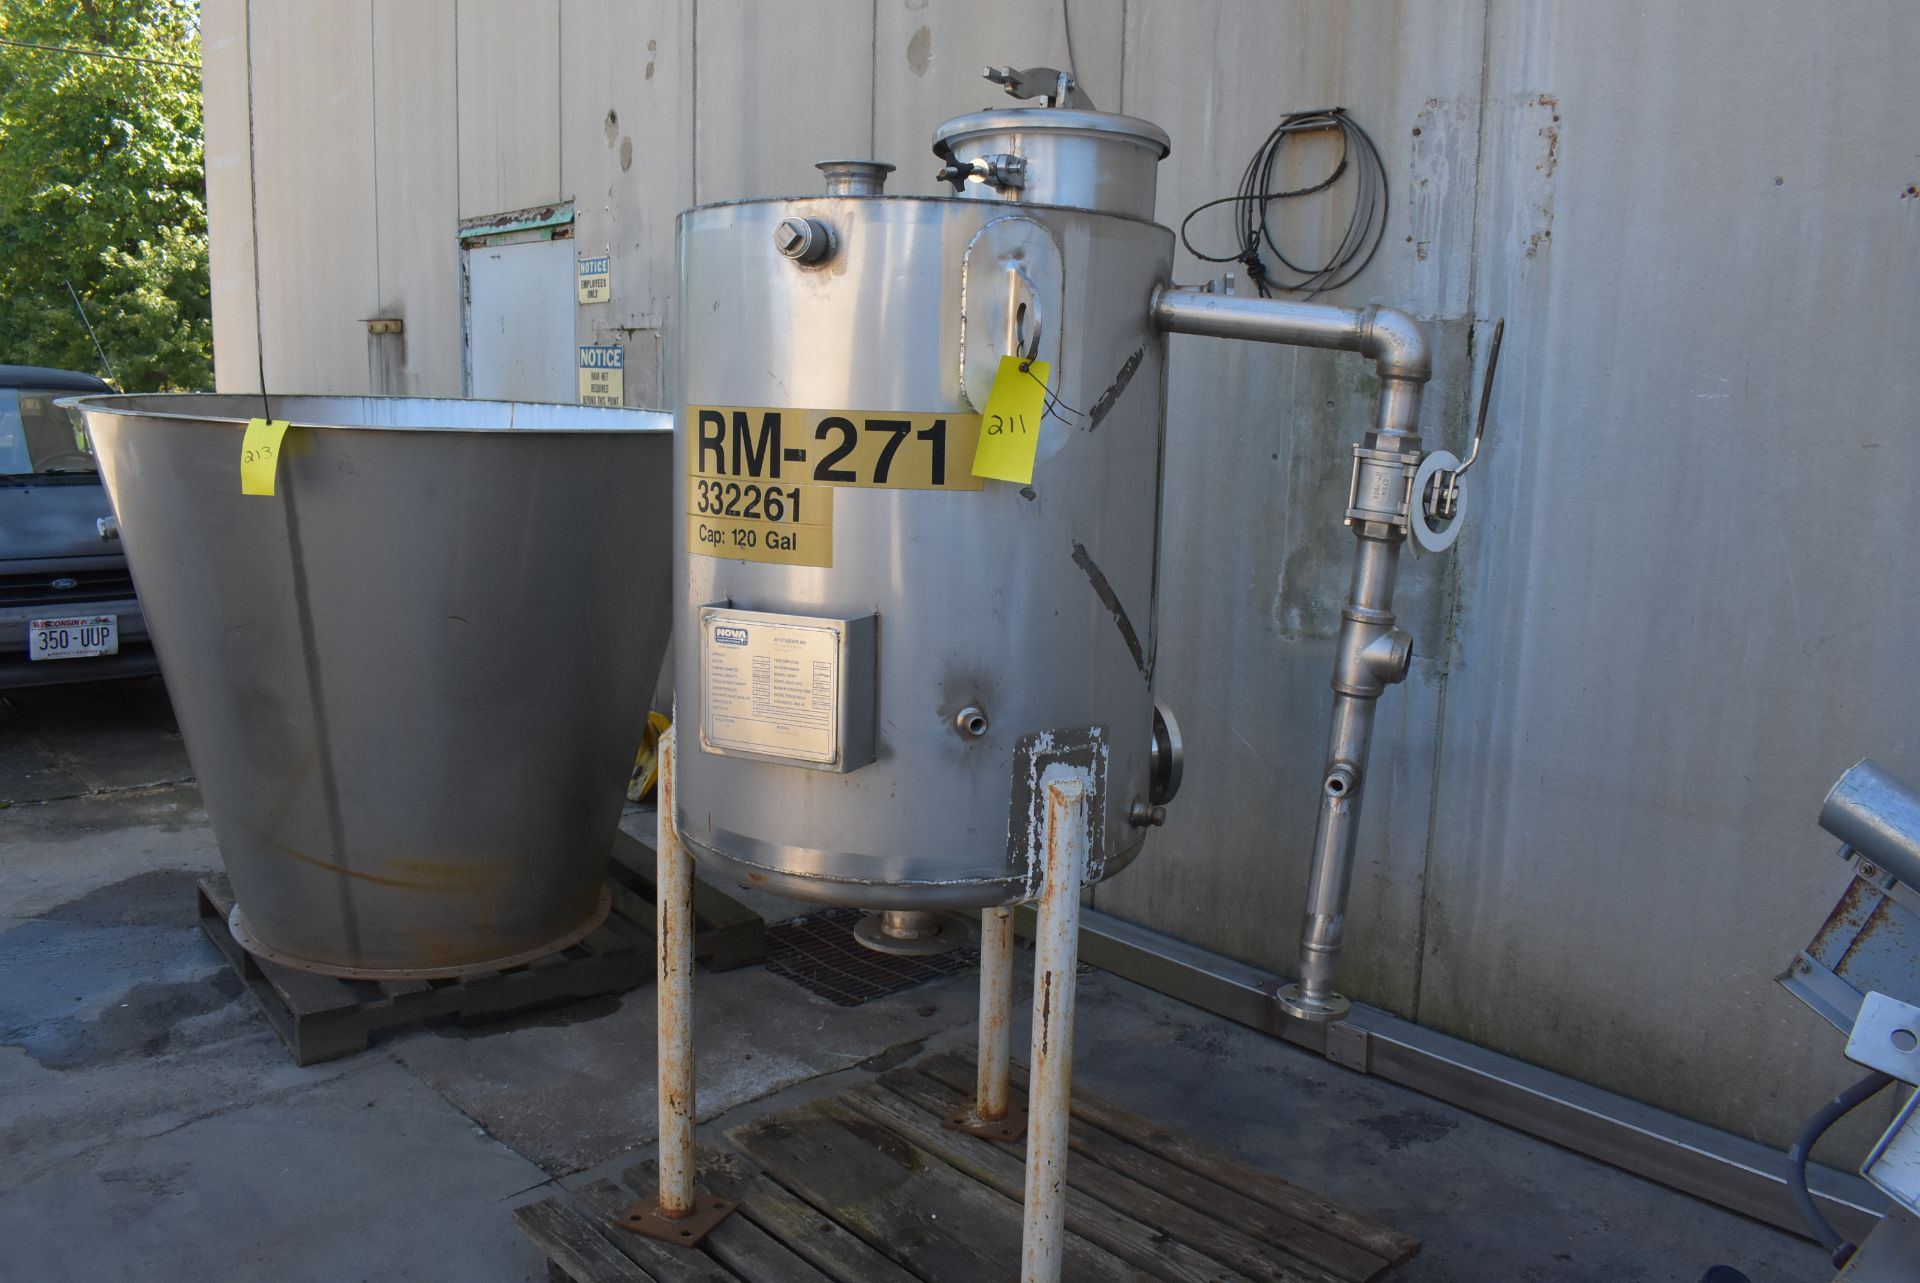 Nova Stainless Steel Tank, Rated 120 Gallons, 3' Height